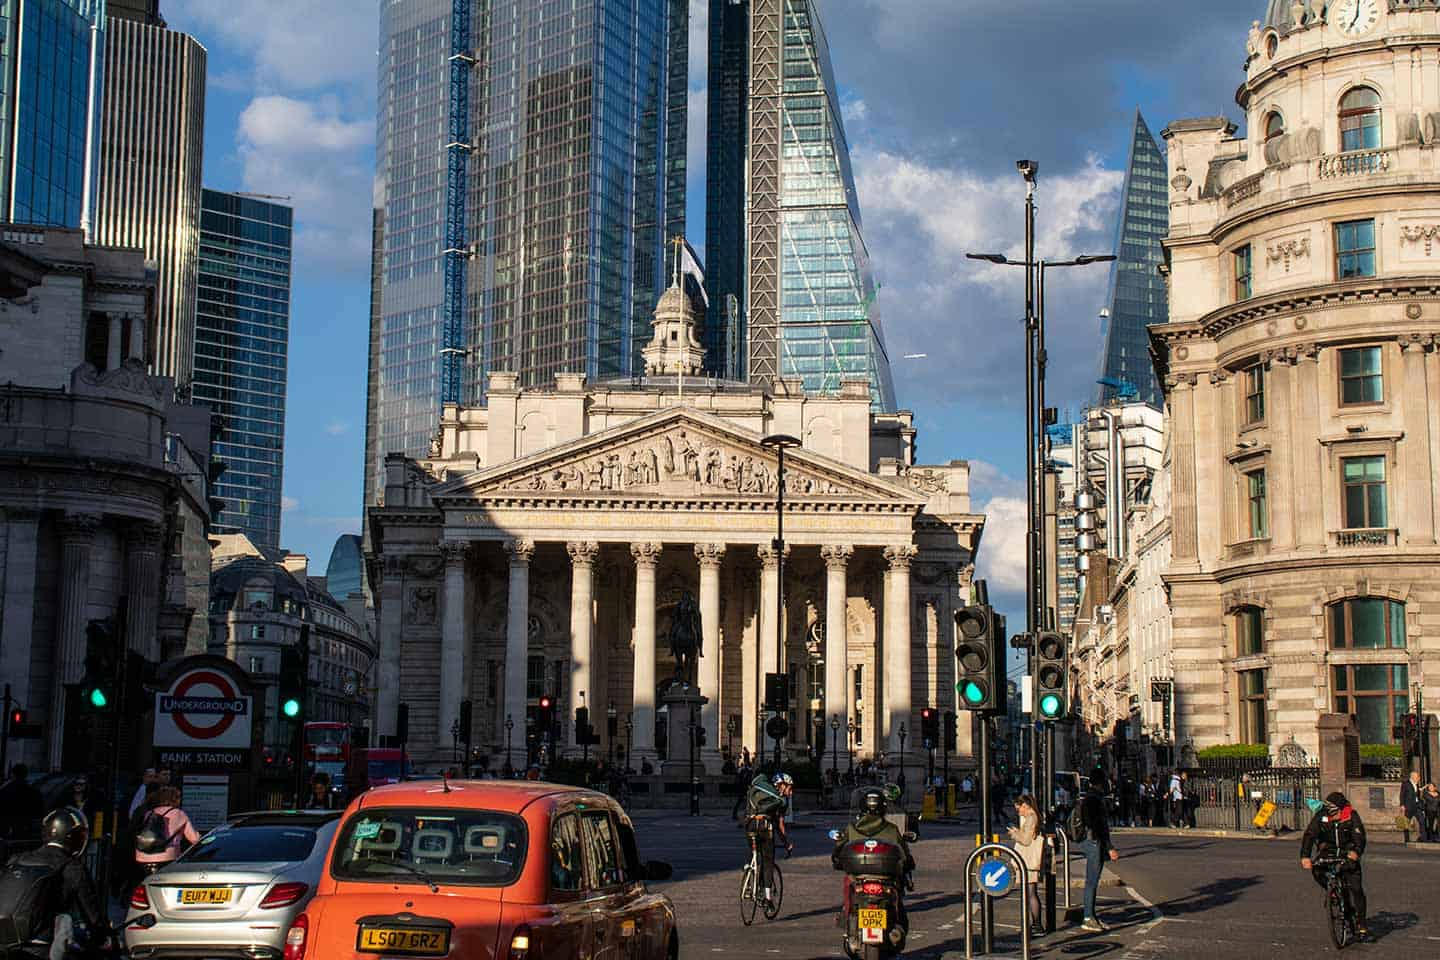 Image of the Royal Exchange building in the City of London